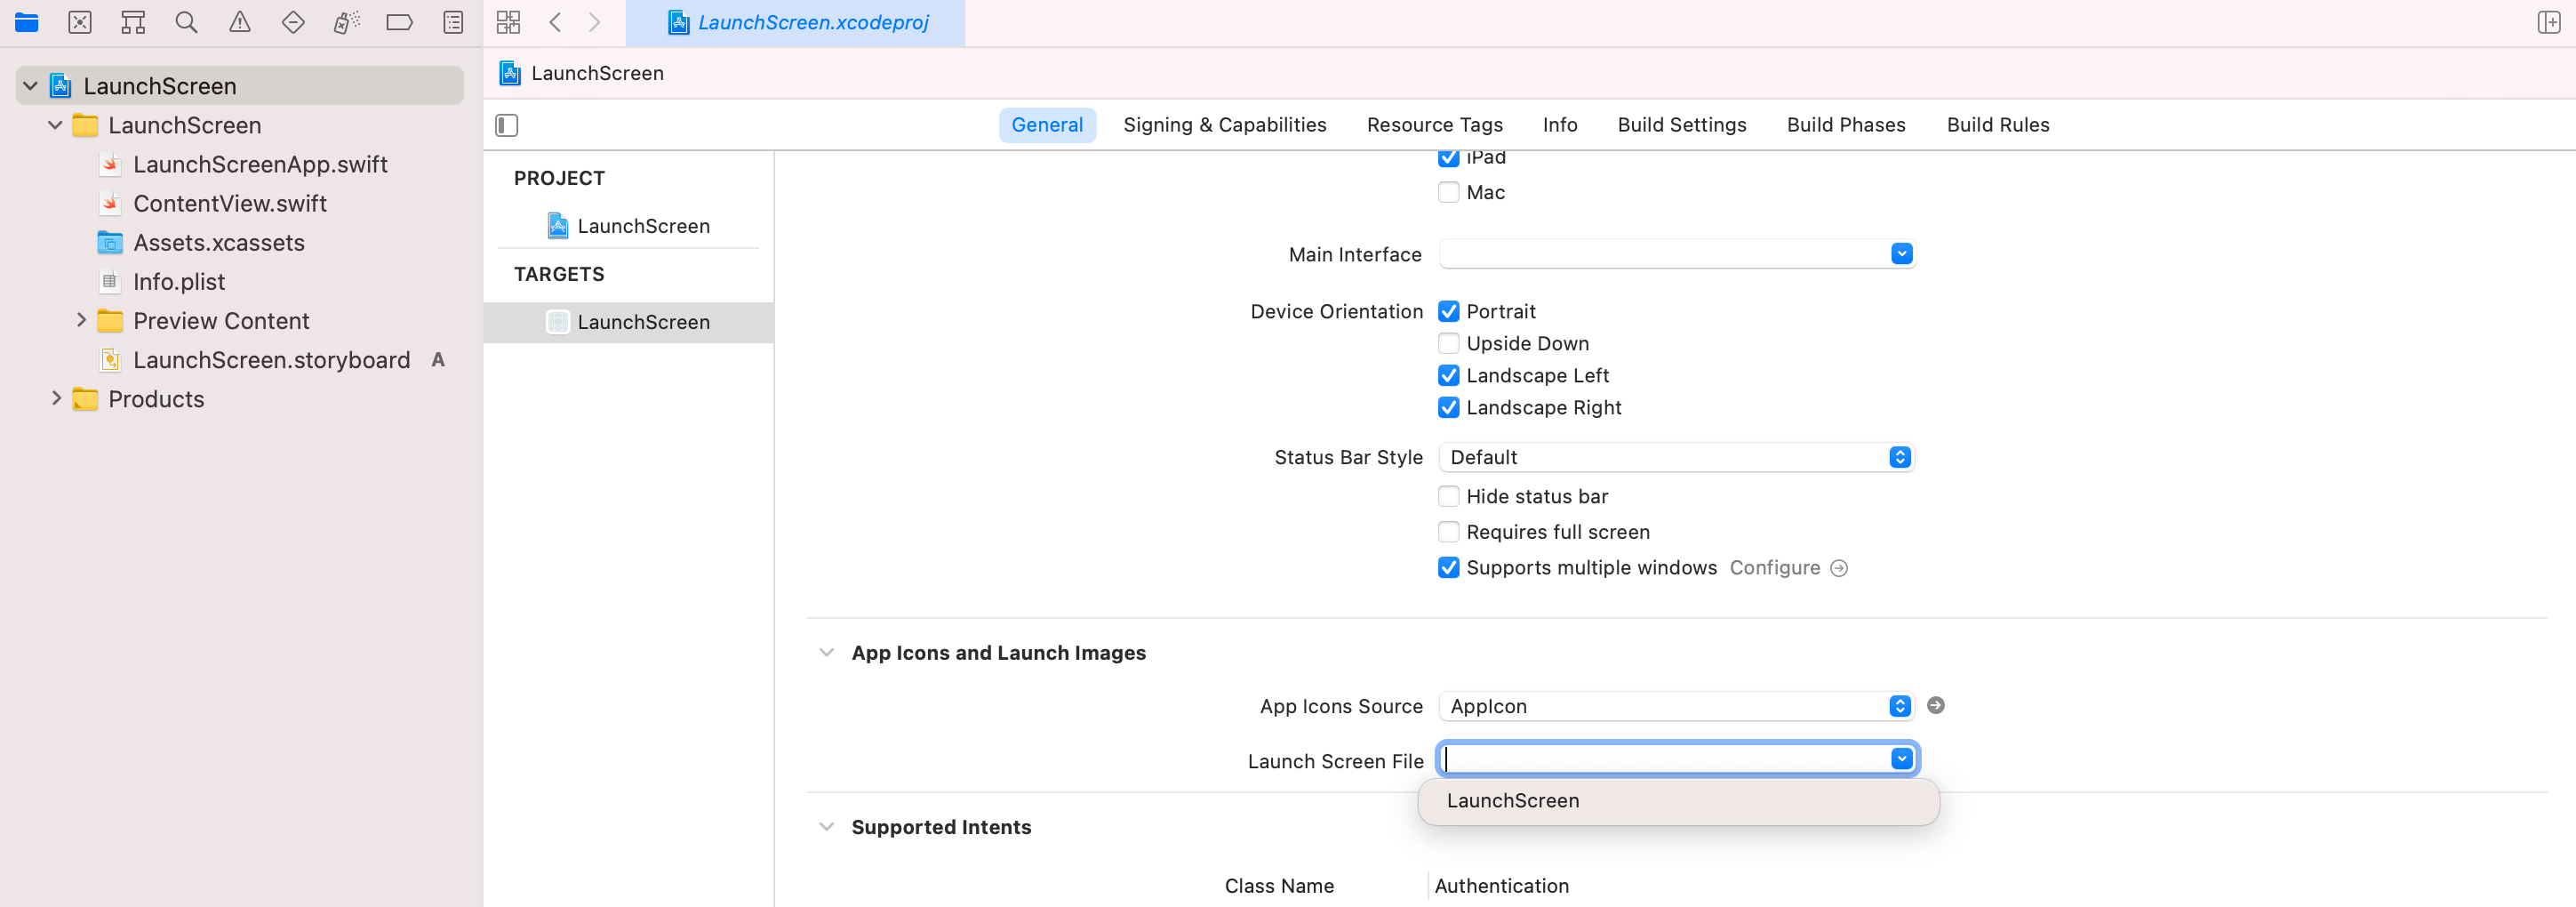 Launch Screen - Setting the project option